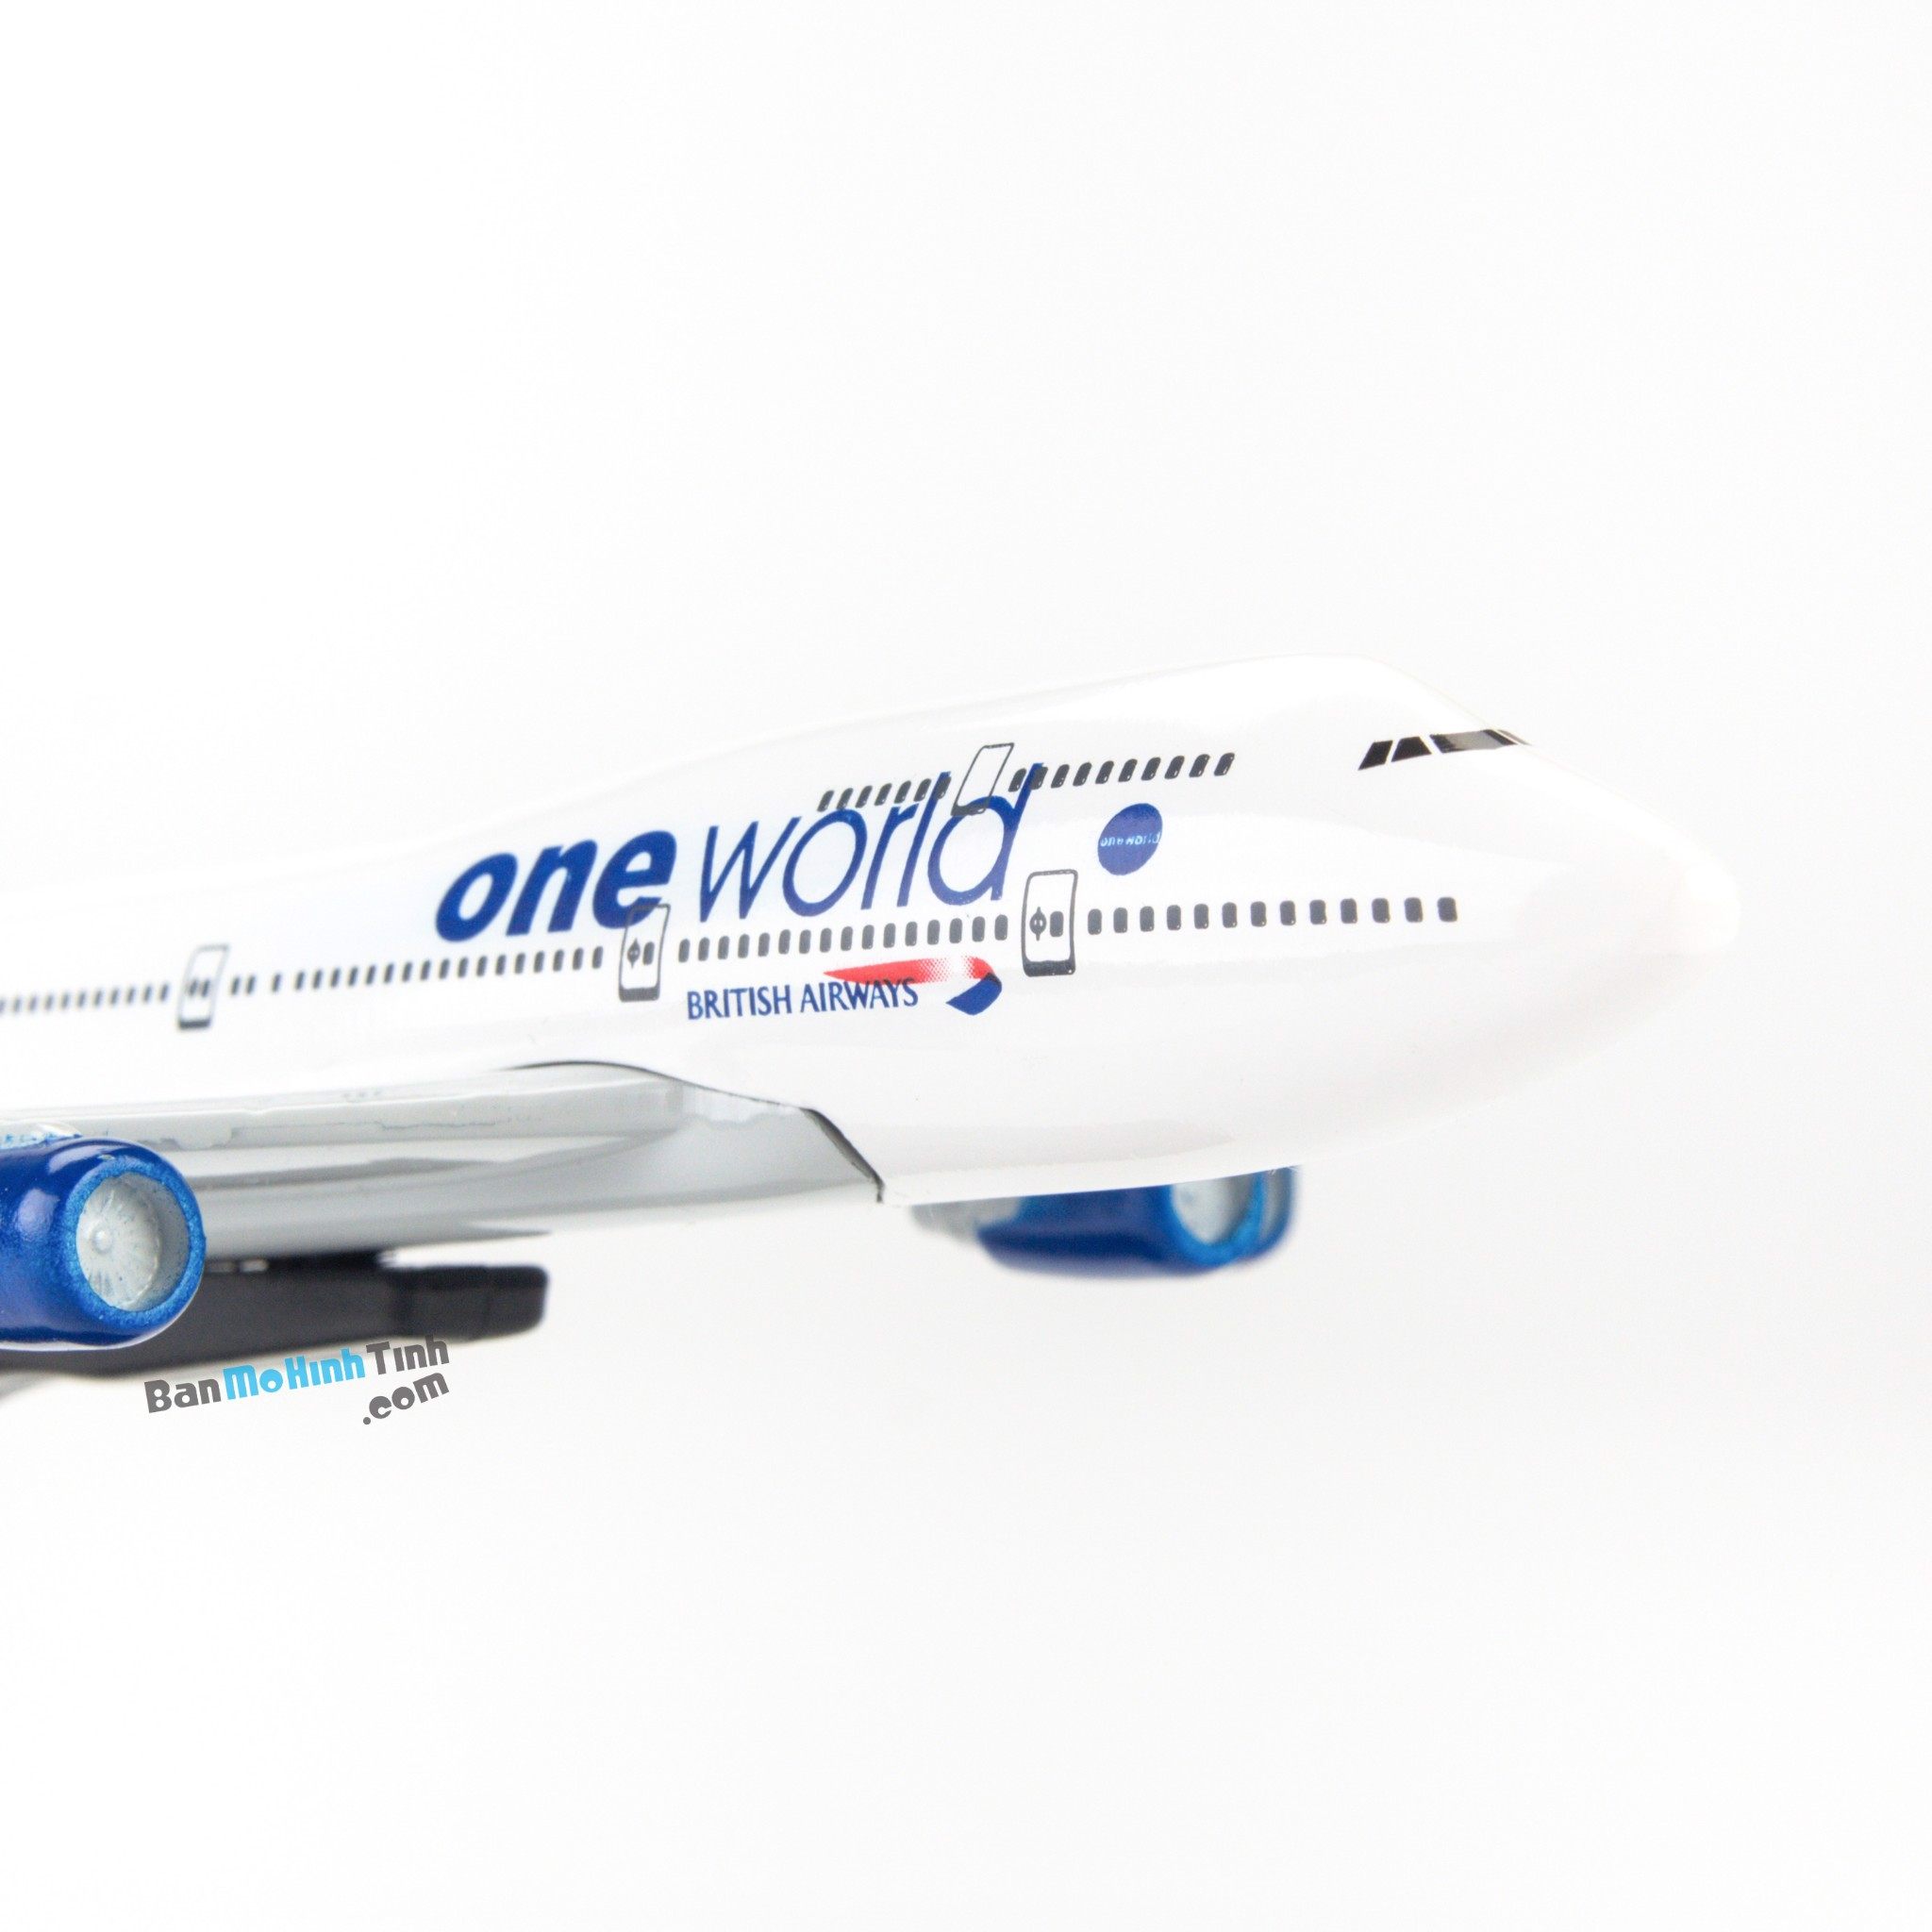 Mô hình máy bay One World British Airways Boeing B747 16cm Everfly